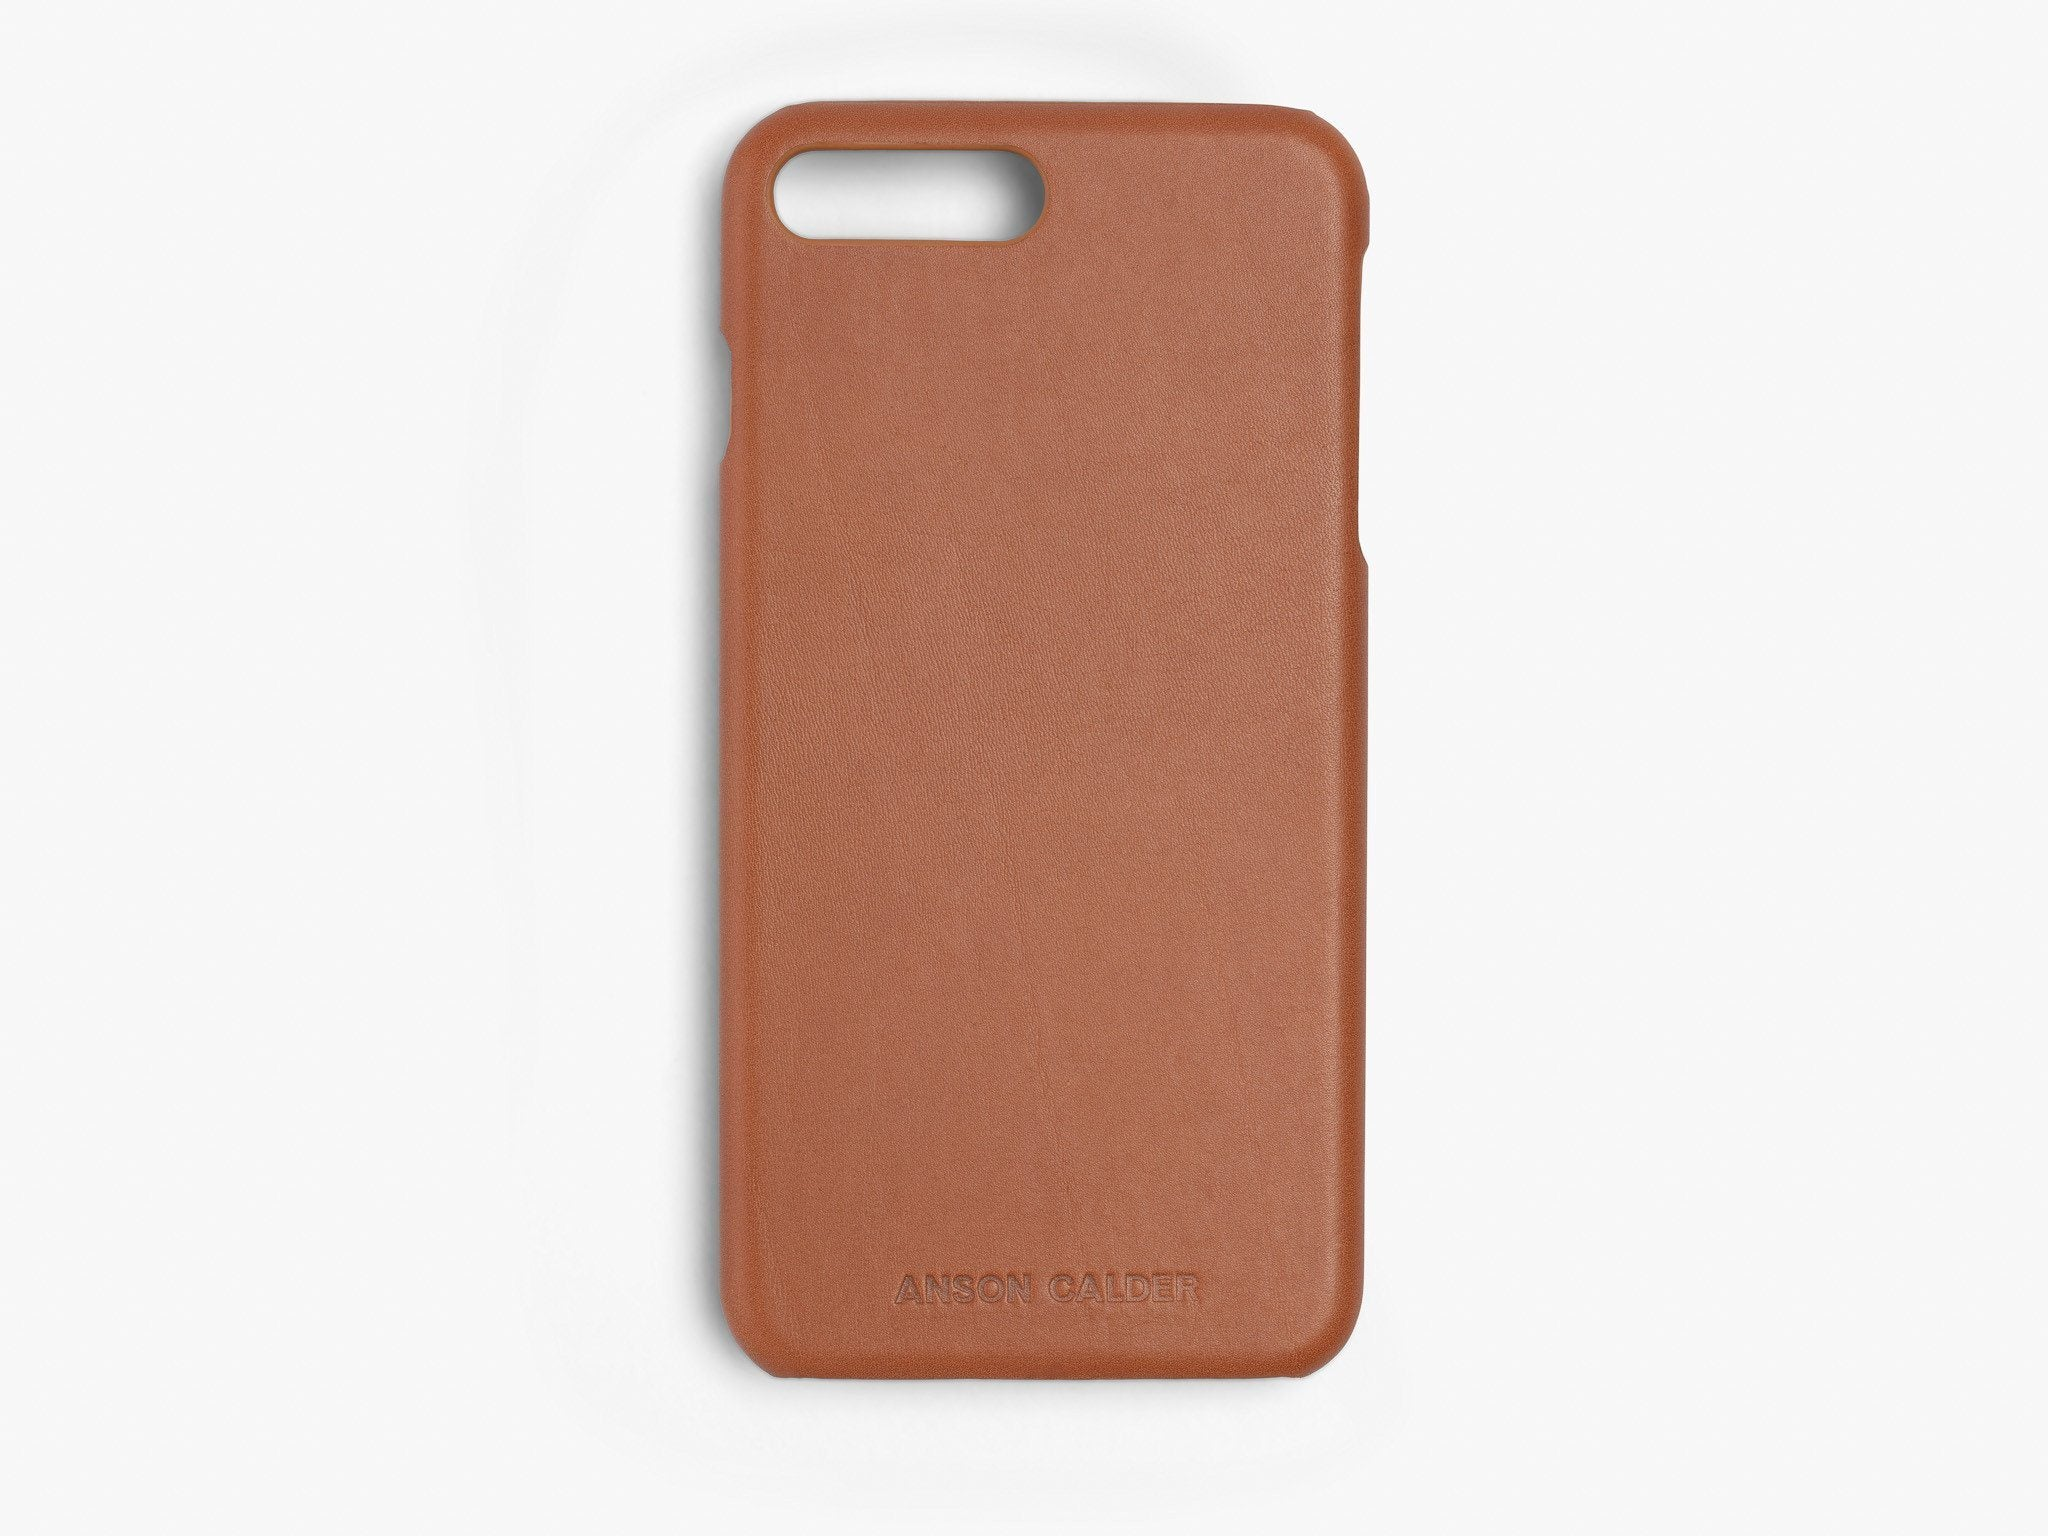 CALFSKIN iPHONE CASE CASES ANSON CALDER iPhone 6 Plus !iphone7plus _cognac